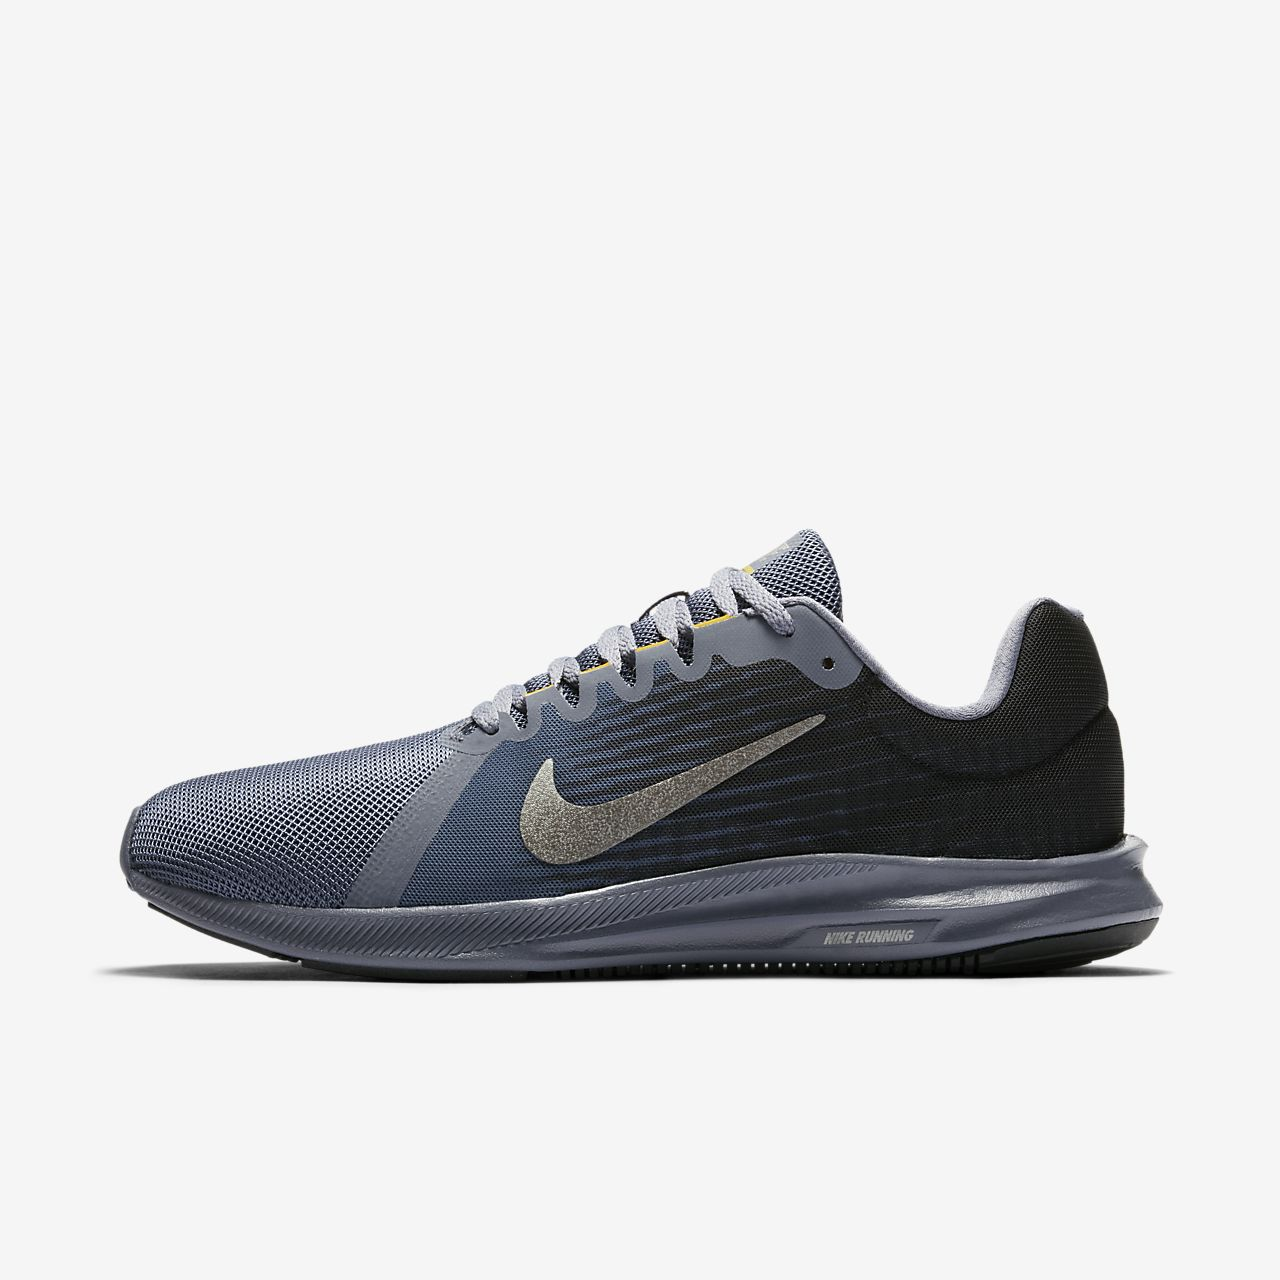 c3dbfc5359940 Nike Downshifter 8 Men s Running Shoe. Nike.com GB